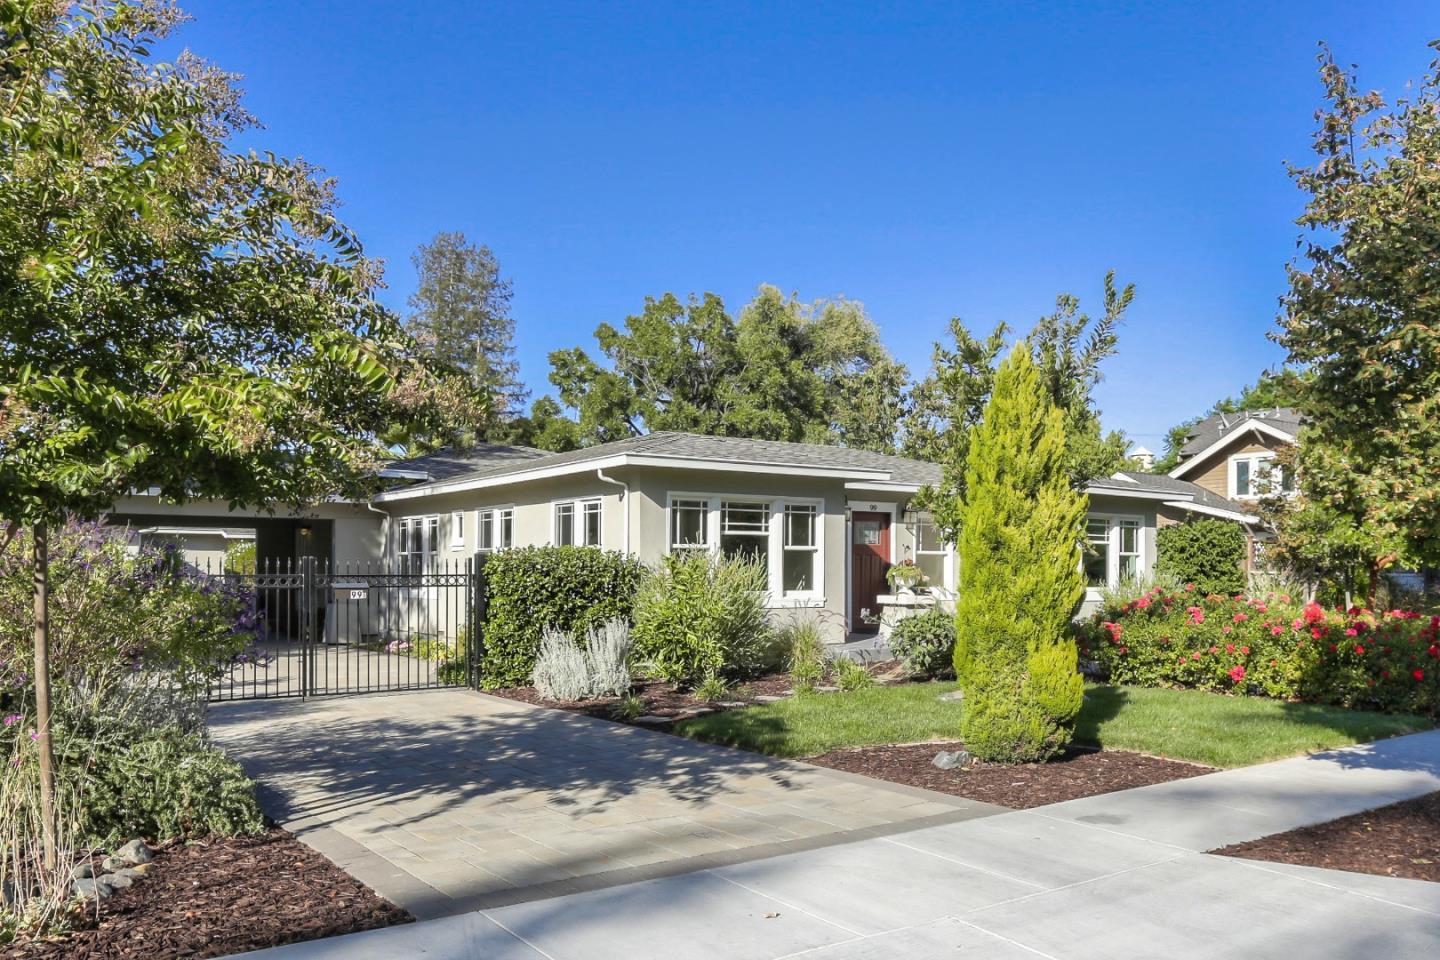 99 ALICE AVE, CAMPBELL, CA 95008